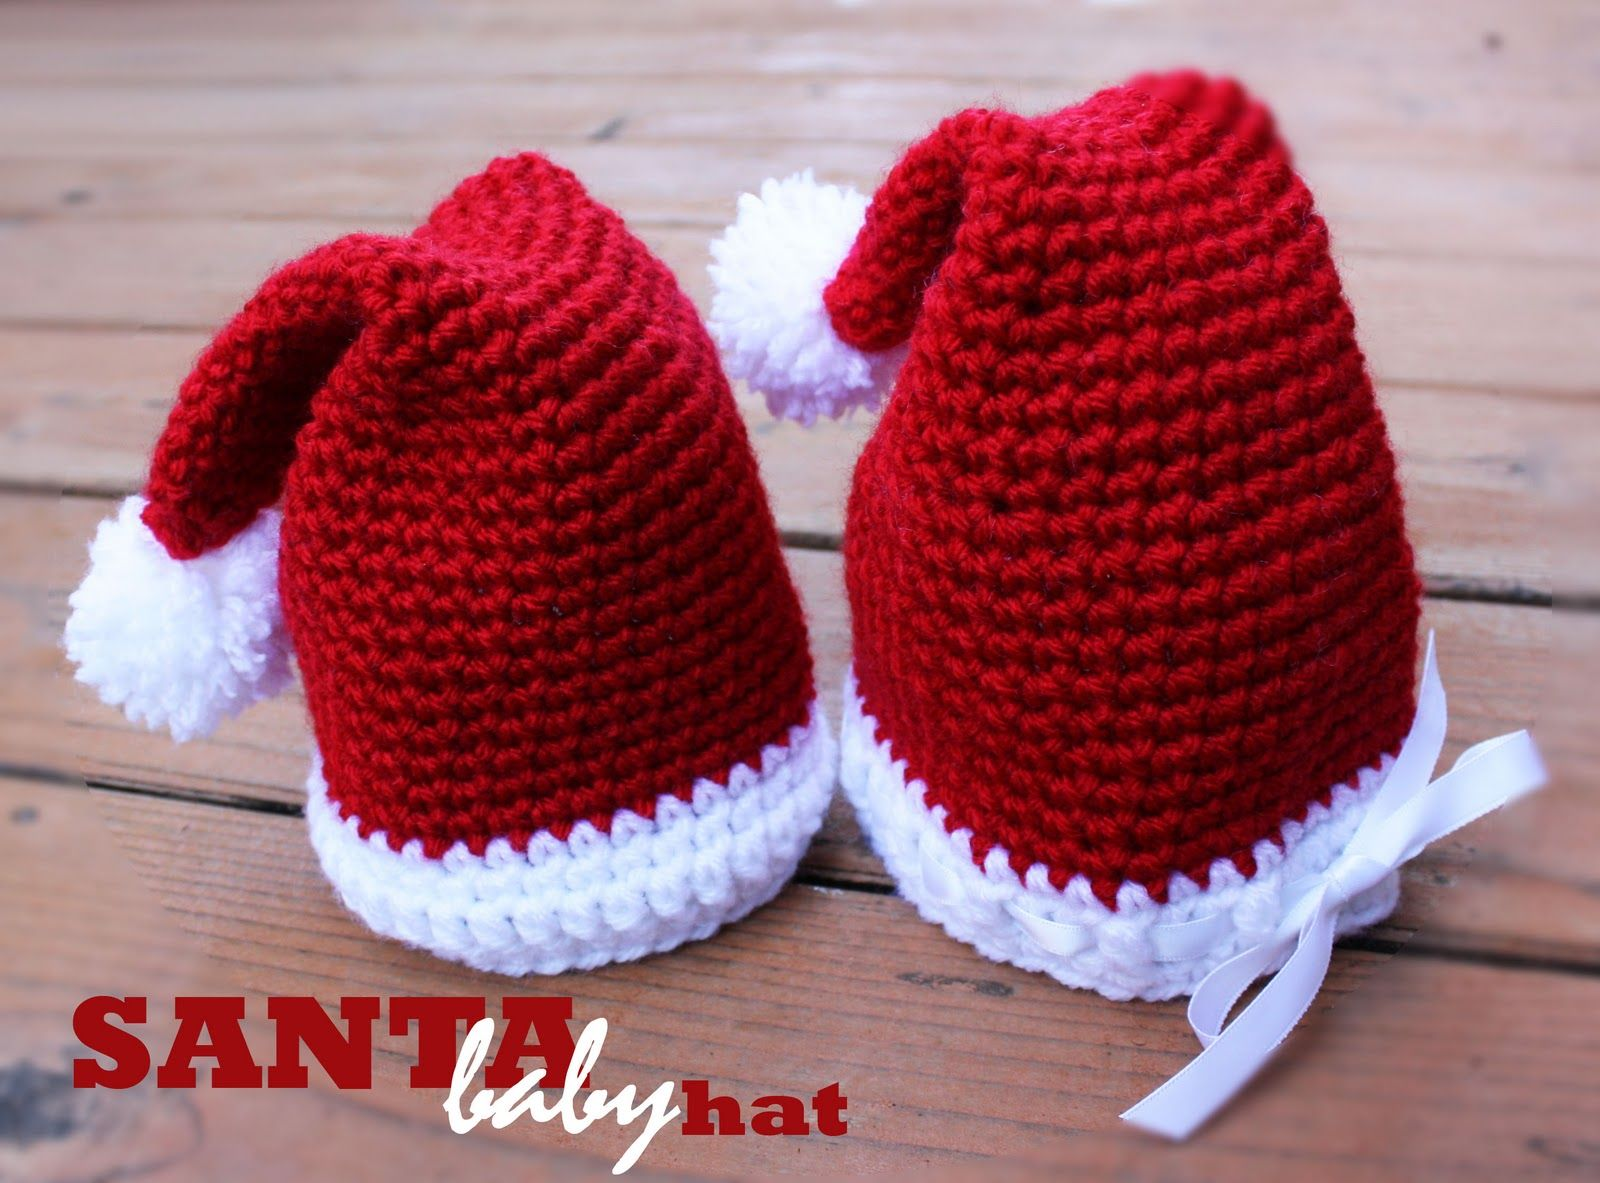 Holiday Hats in several super cute styles